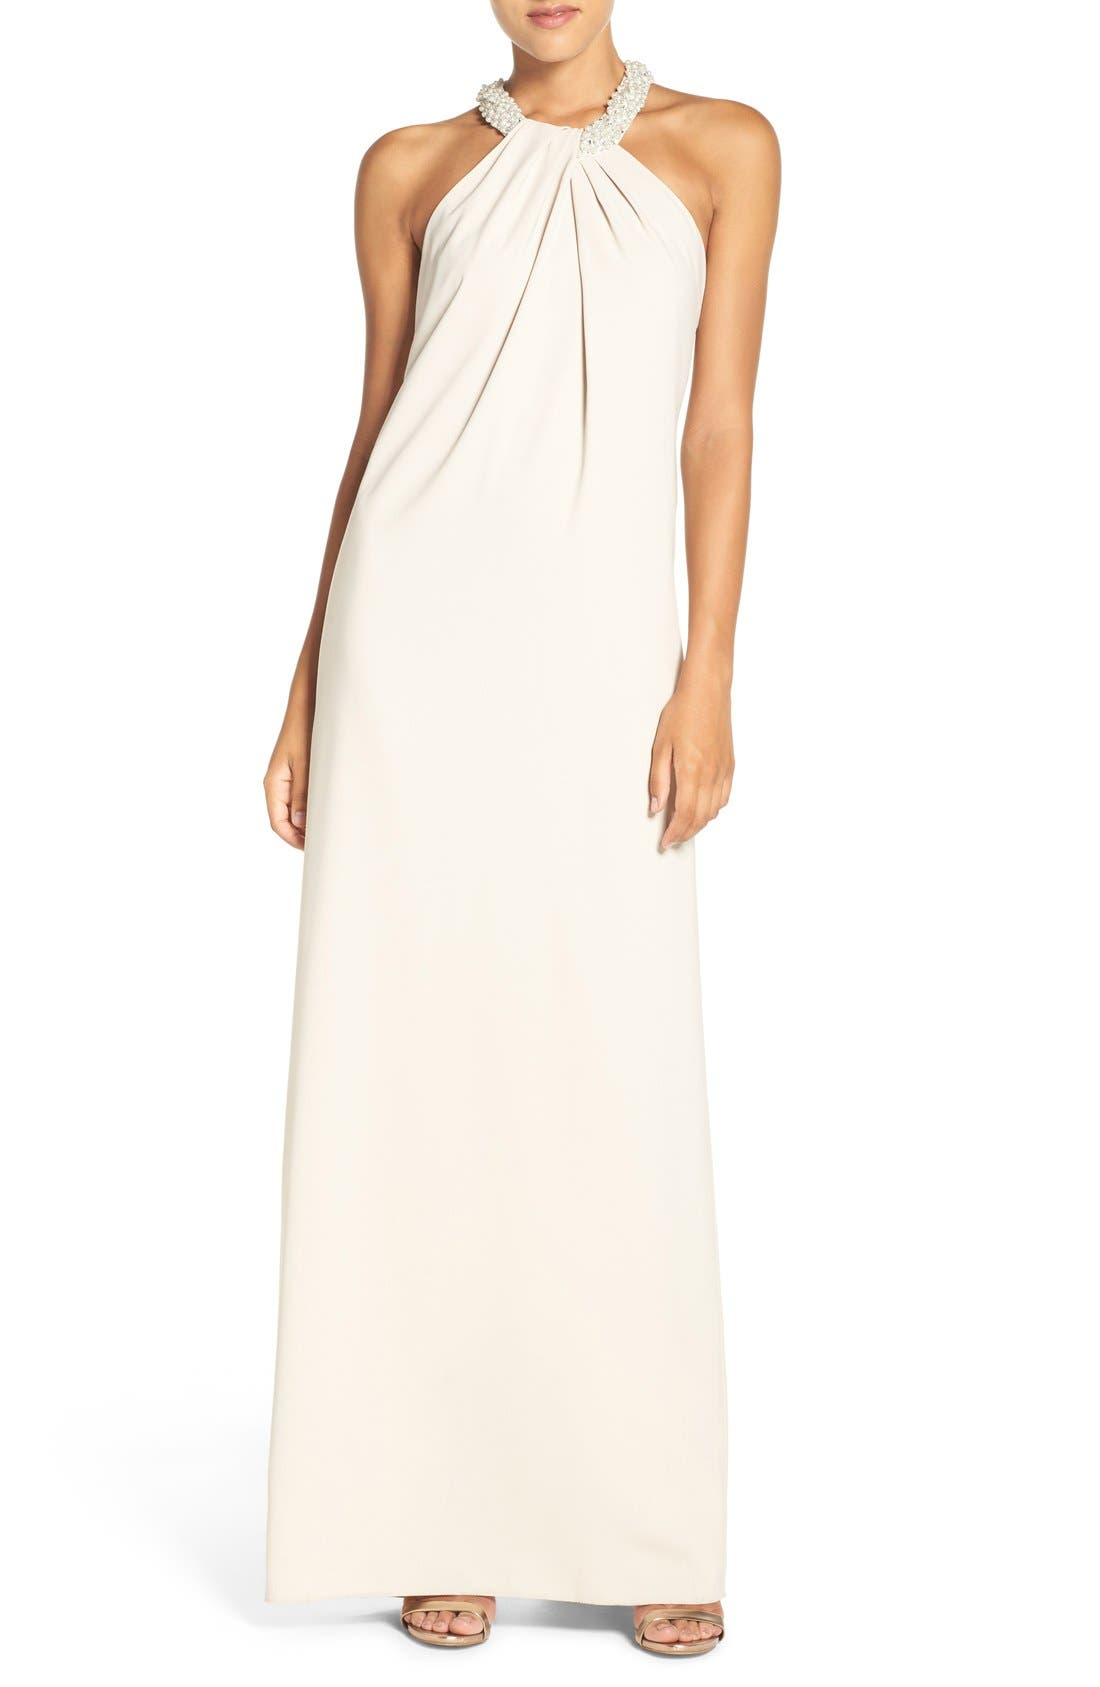 DESSY COLLECTION Beaded Halter Neck Crepe Gown